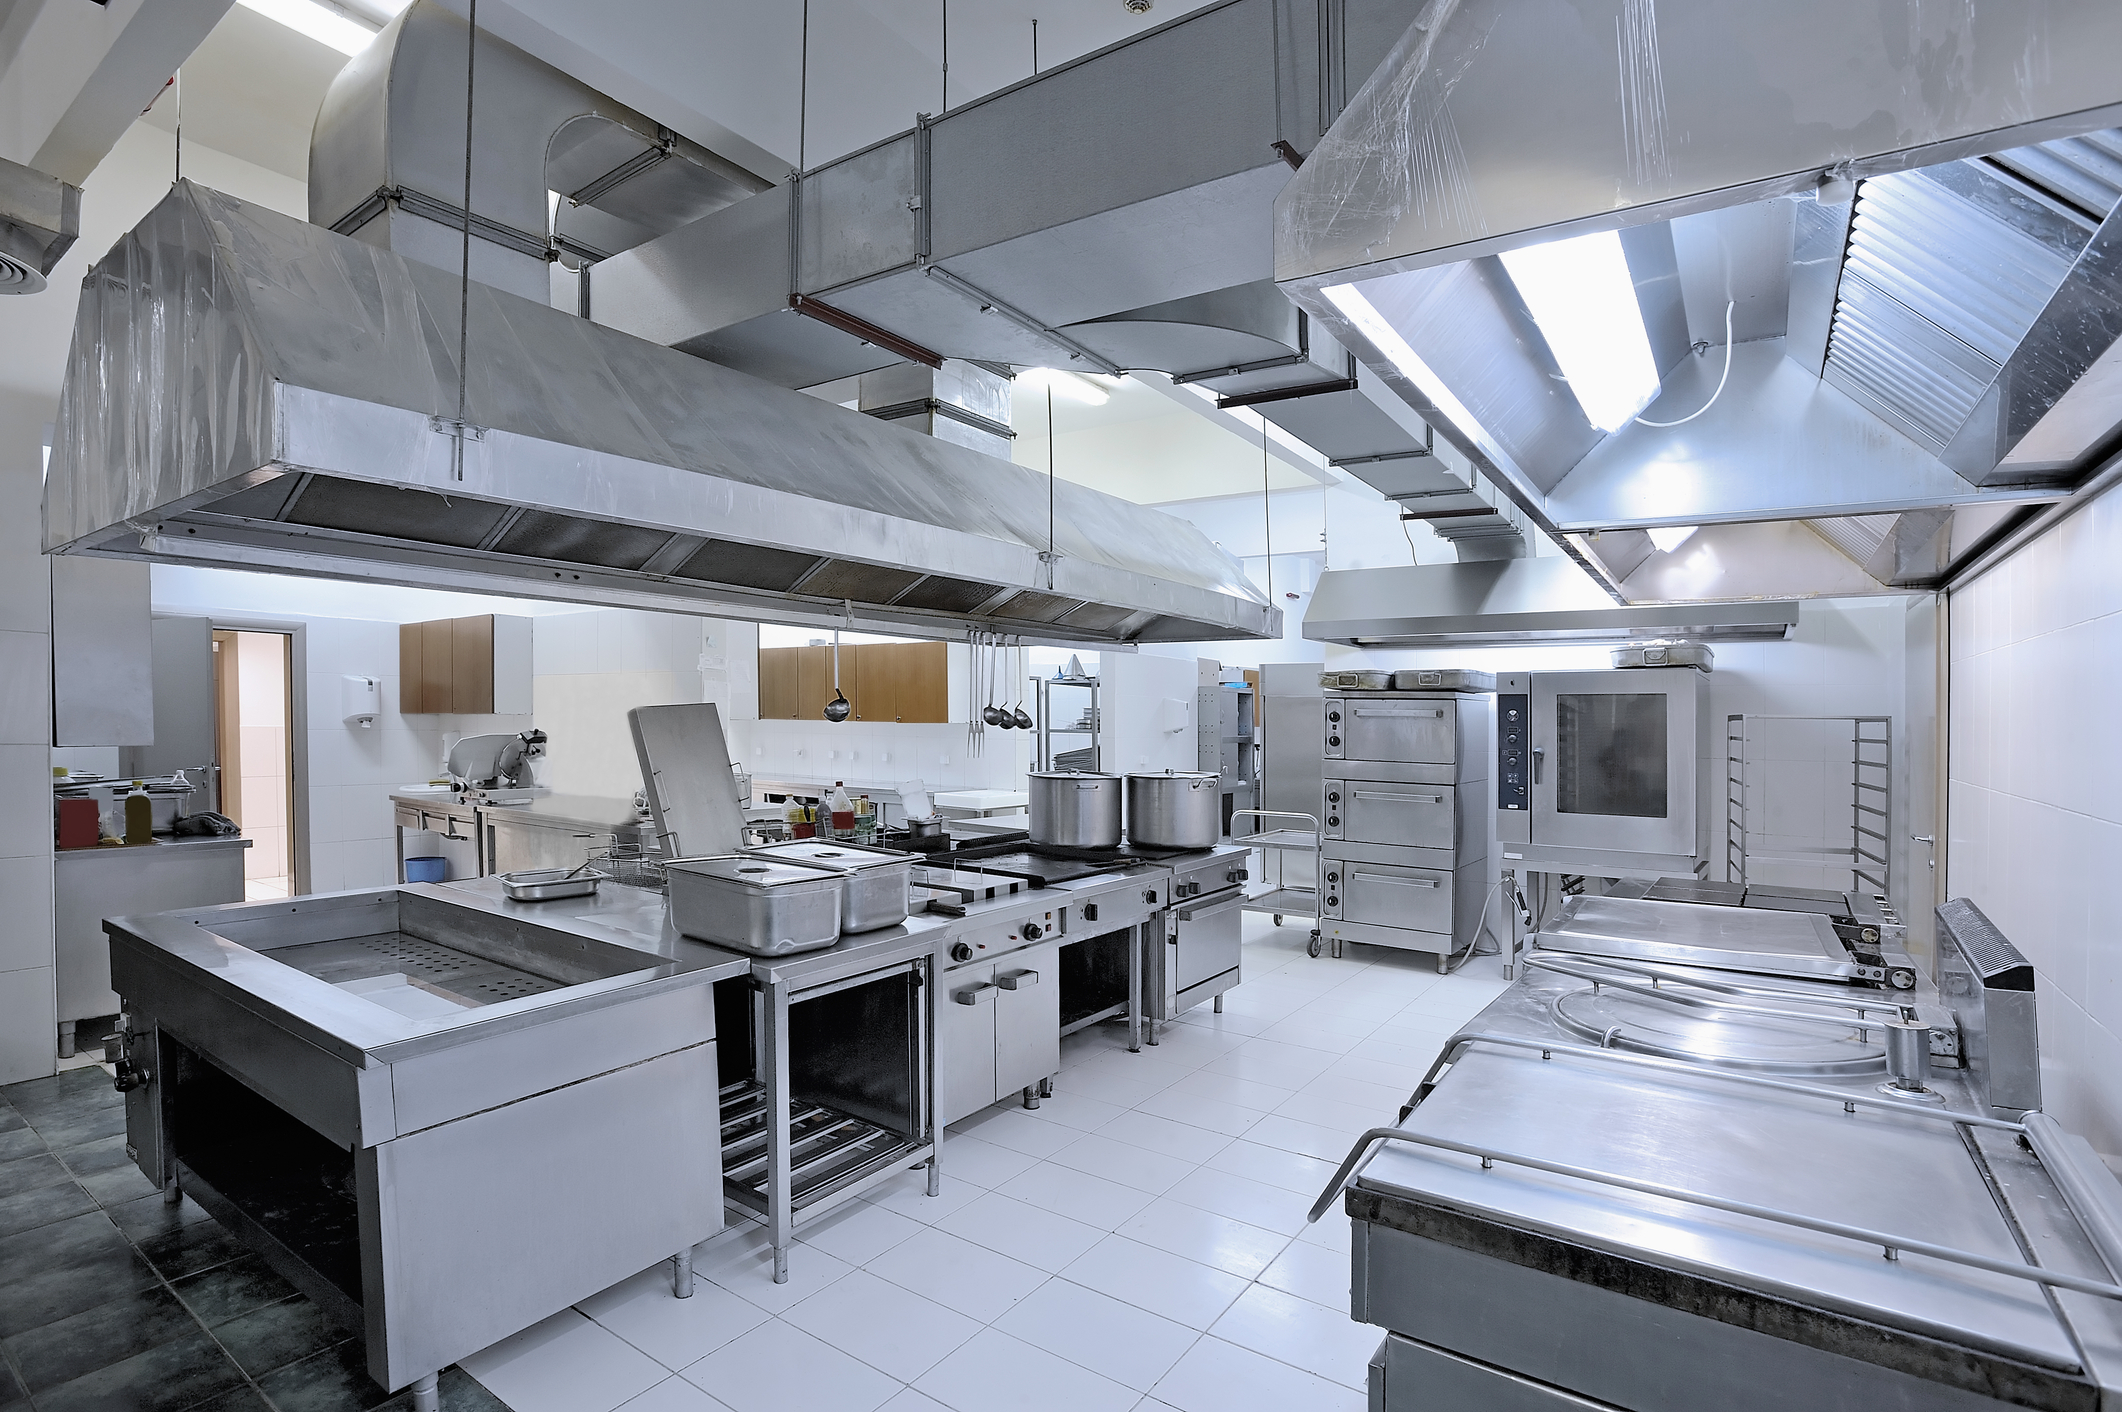 Commercial kitchen design best 5 important things you - Professional kitchen designs ...